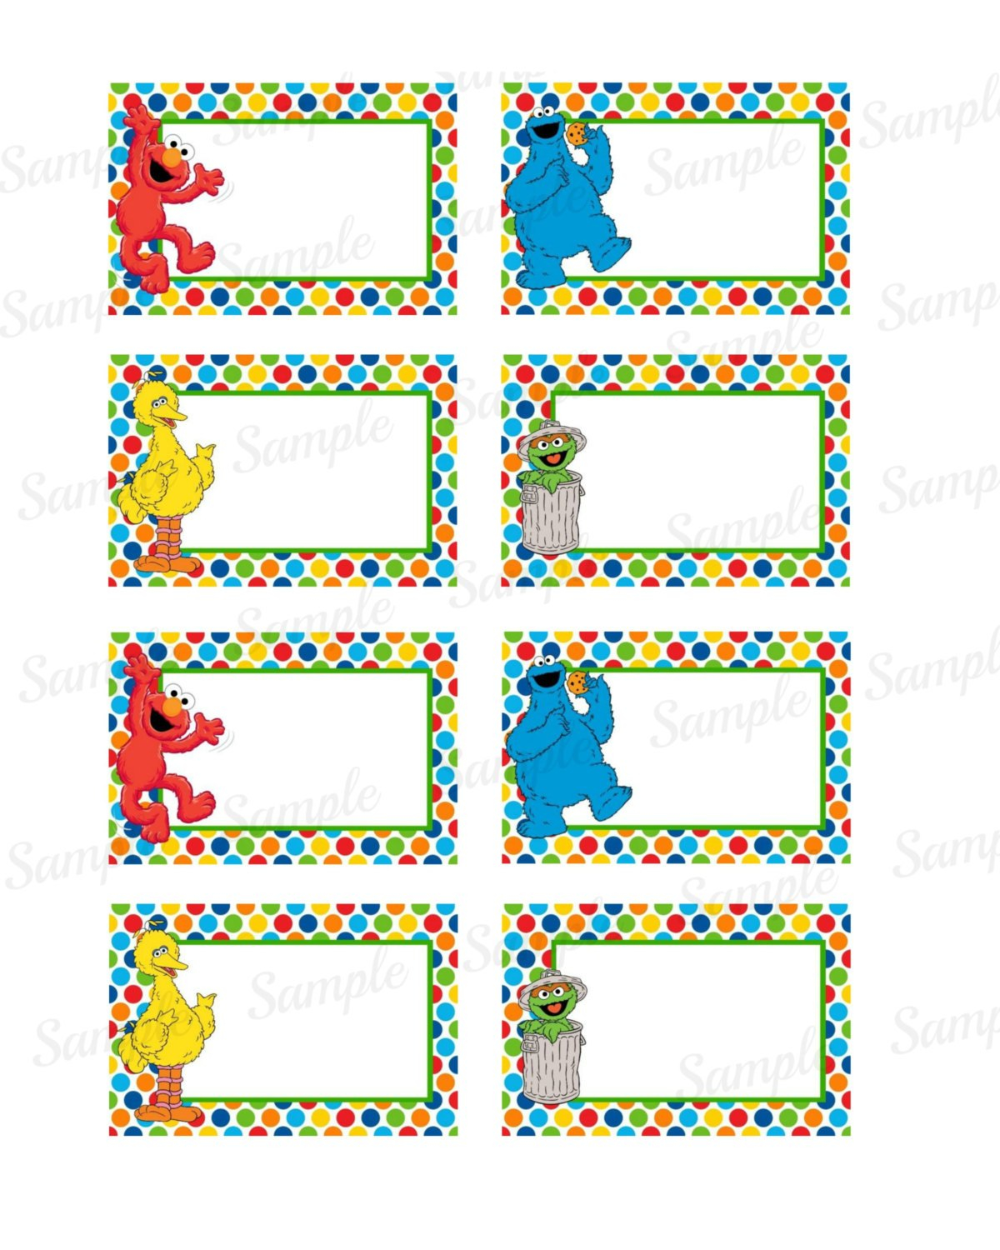 Images Of Elmo Label Template Bfegy Within Sesame Street Label Templates 10 Professional Templates I Sesame Street Label Templates Sesame Street Decorations